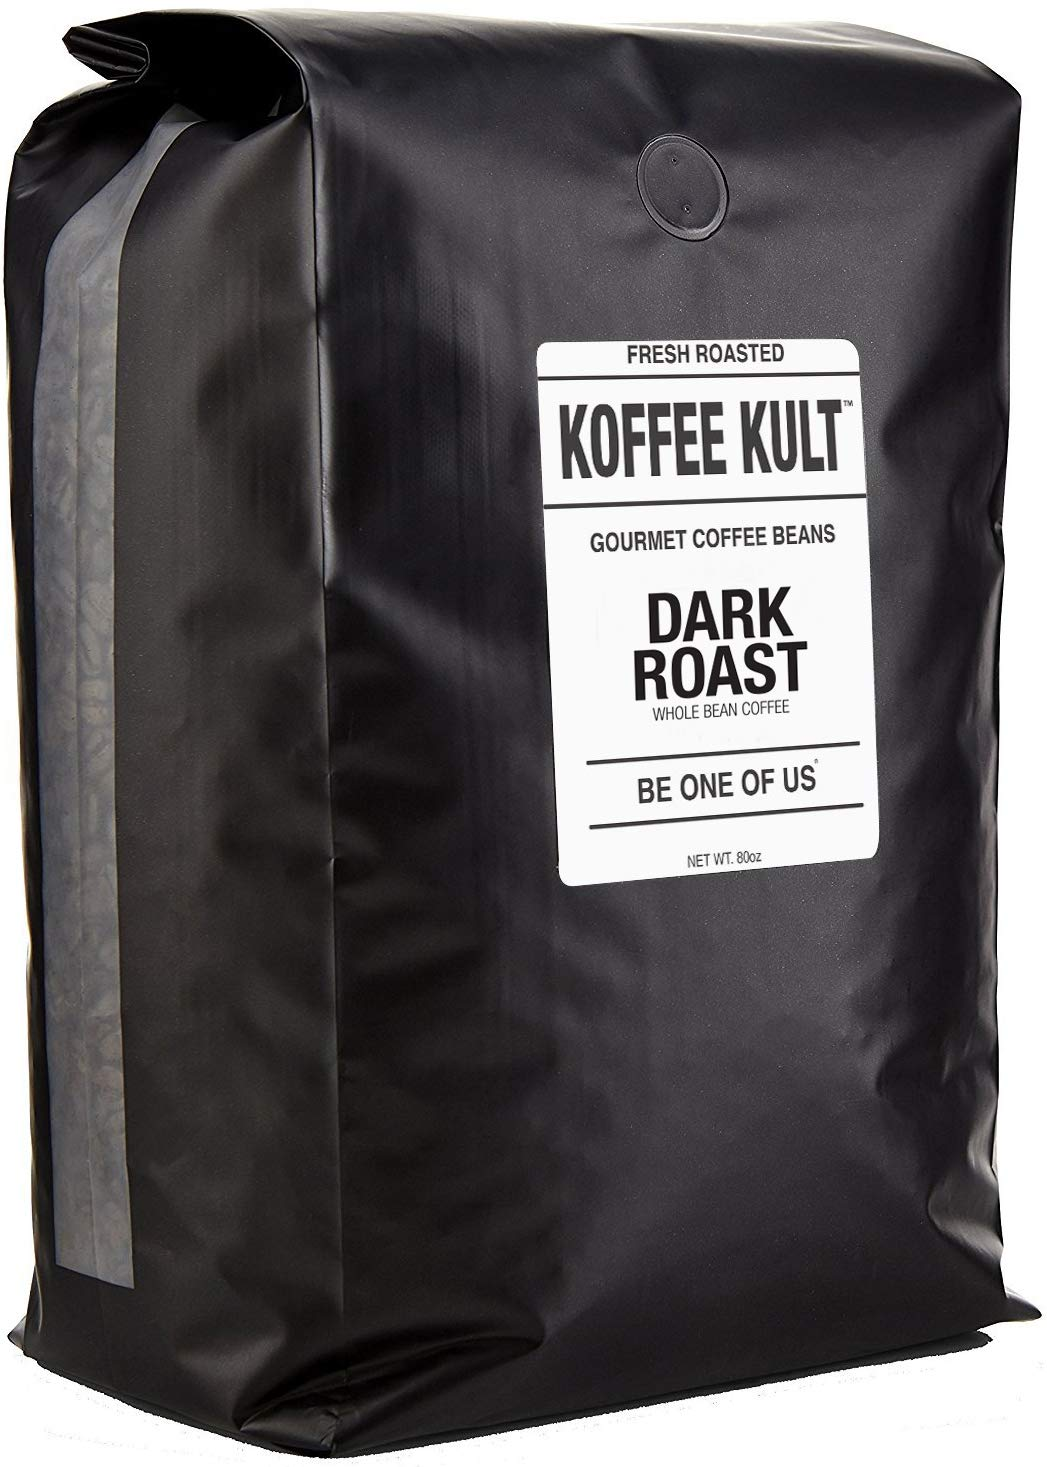 B00ZS6LI70 Koffee Kult DARK ROAST COFFEE BEANS (Whole Bean 5 Lbs) - Highest Quality Specialty Grade Whole Bean Coffee - Fresh Gourmet Aromatic Artisan Blend 71oxATdgILL